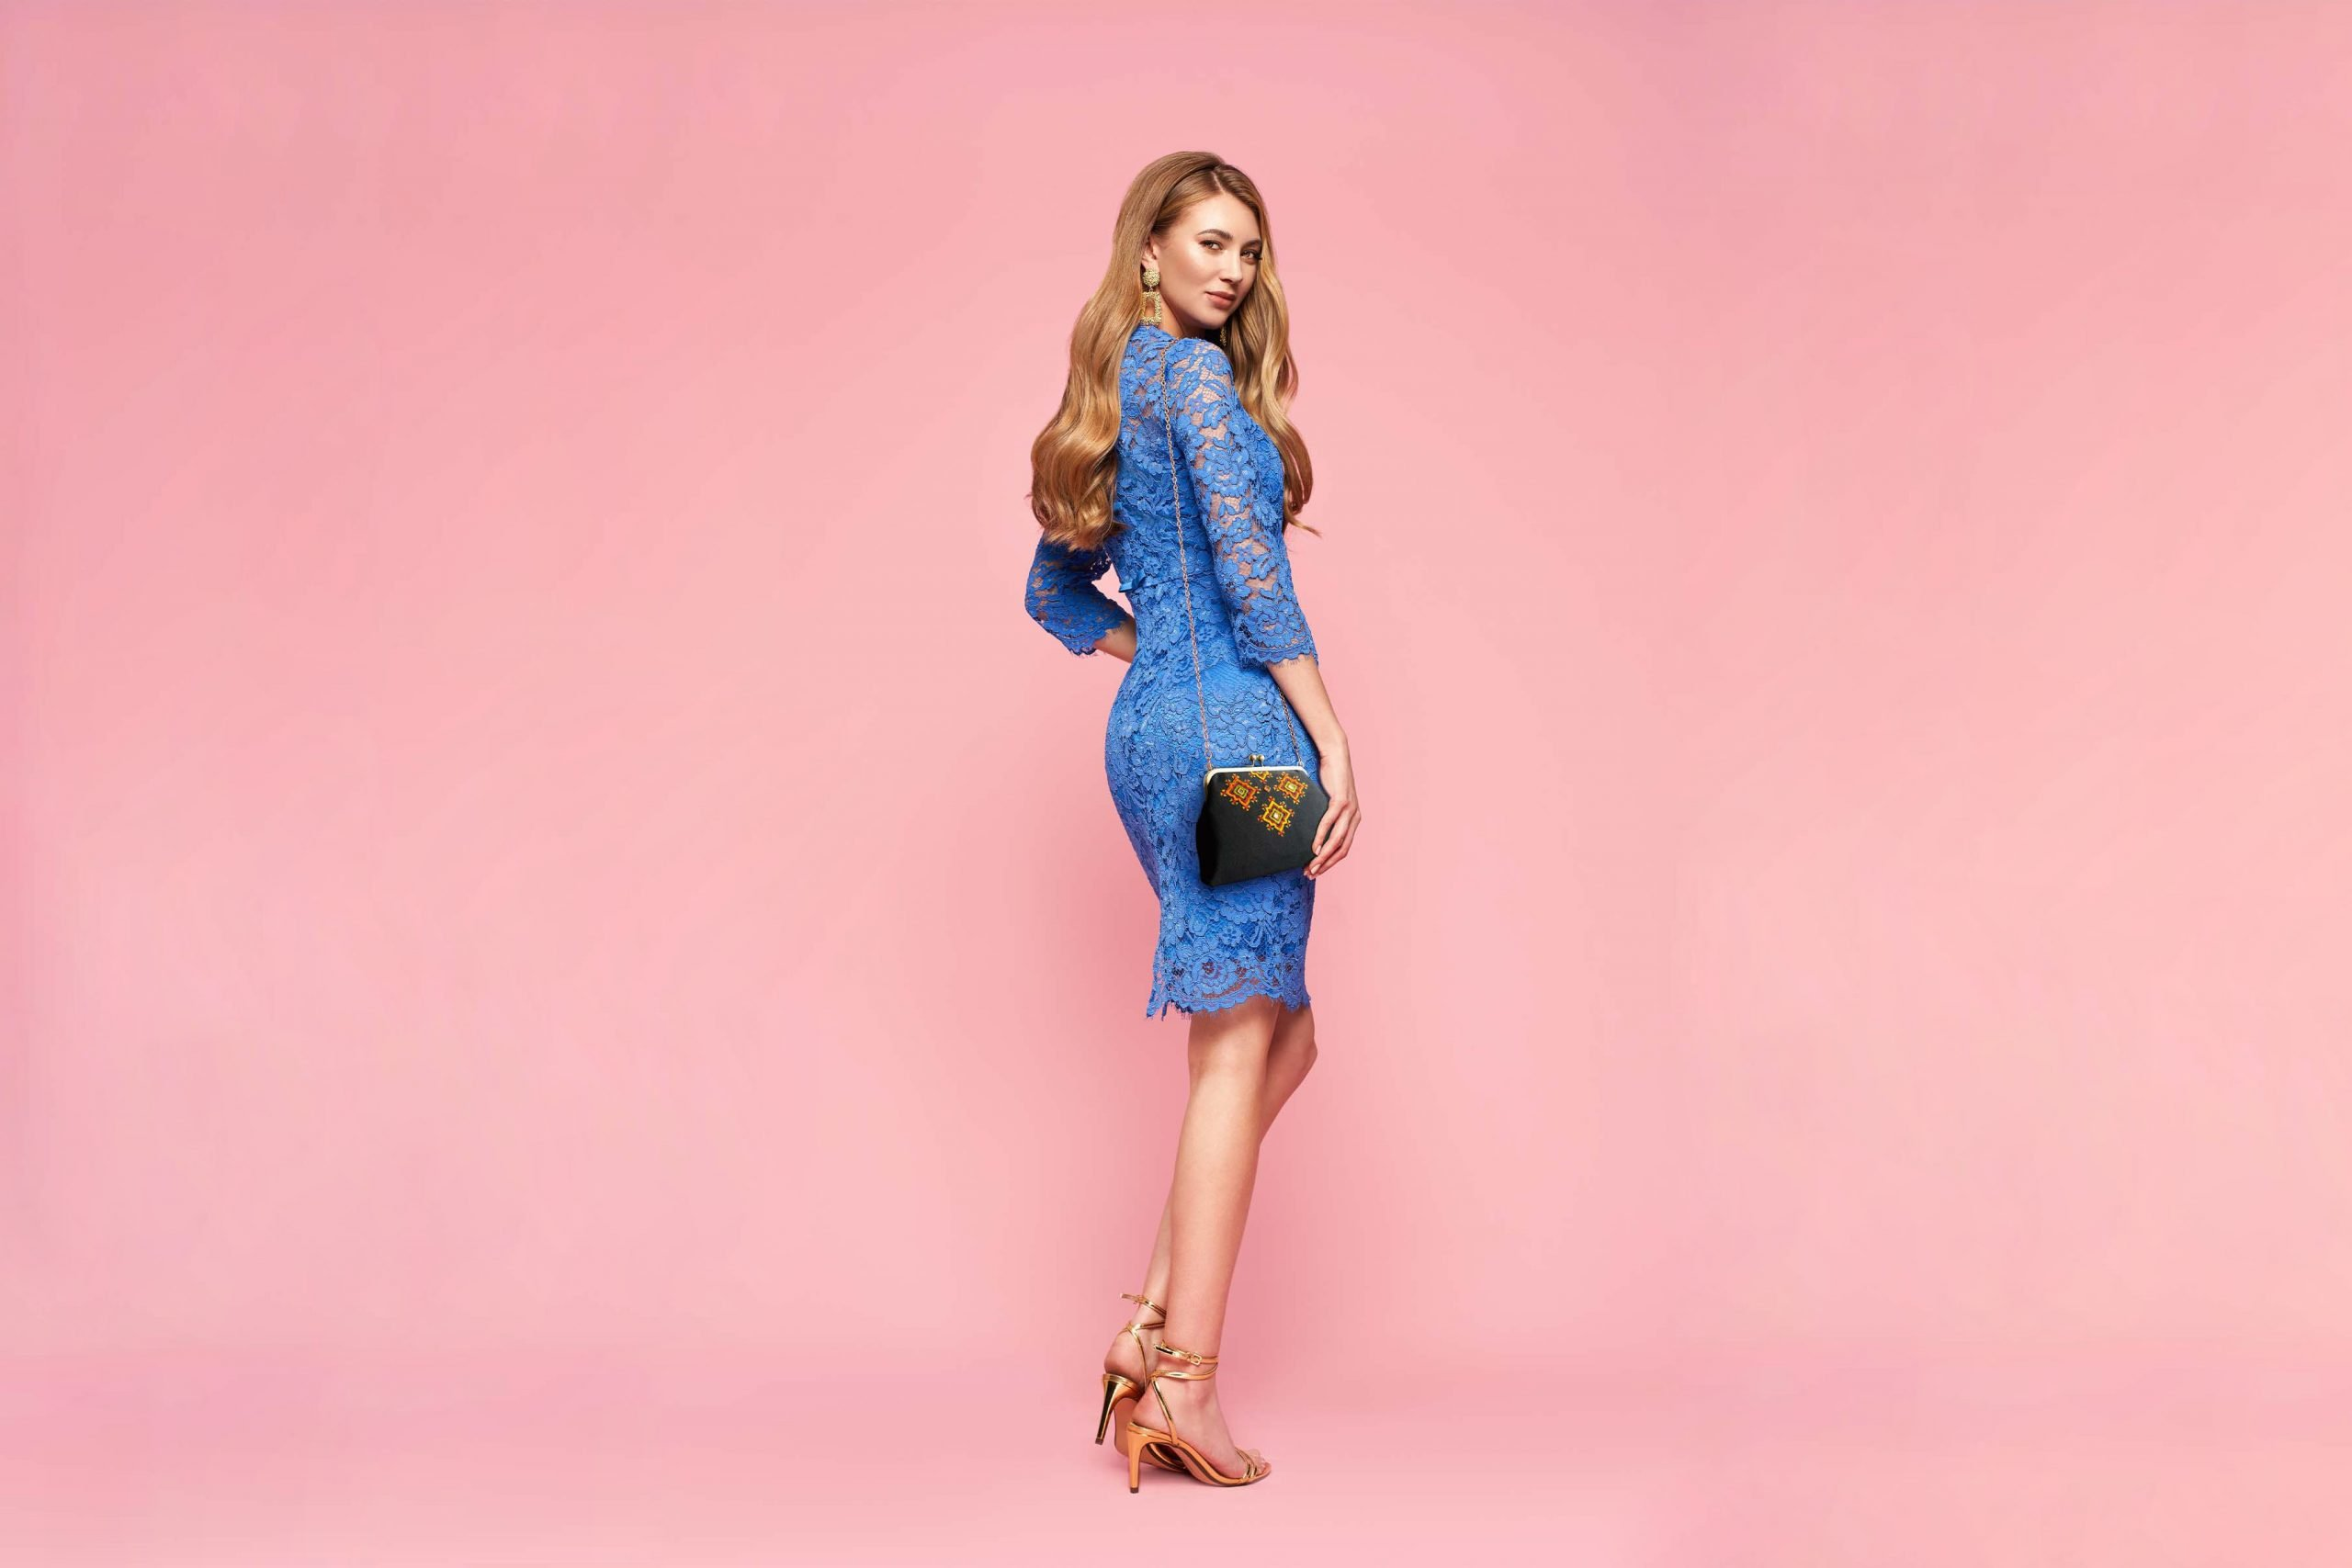 Blonde young woman in elegant blue dress wiith Persian Balochi embroidery crossbody bag